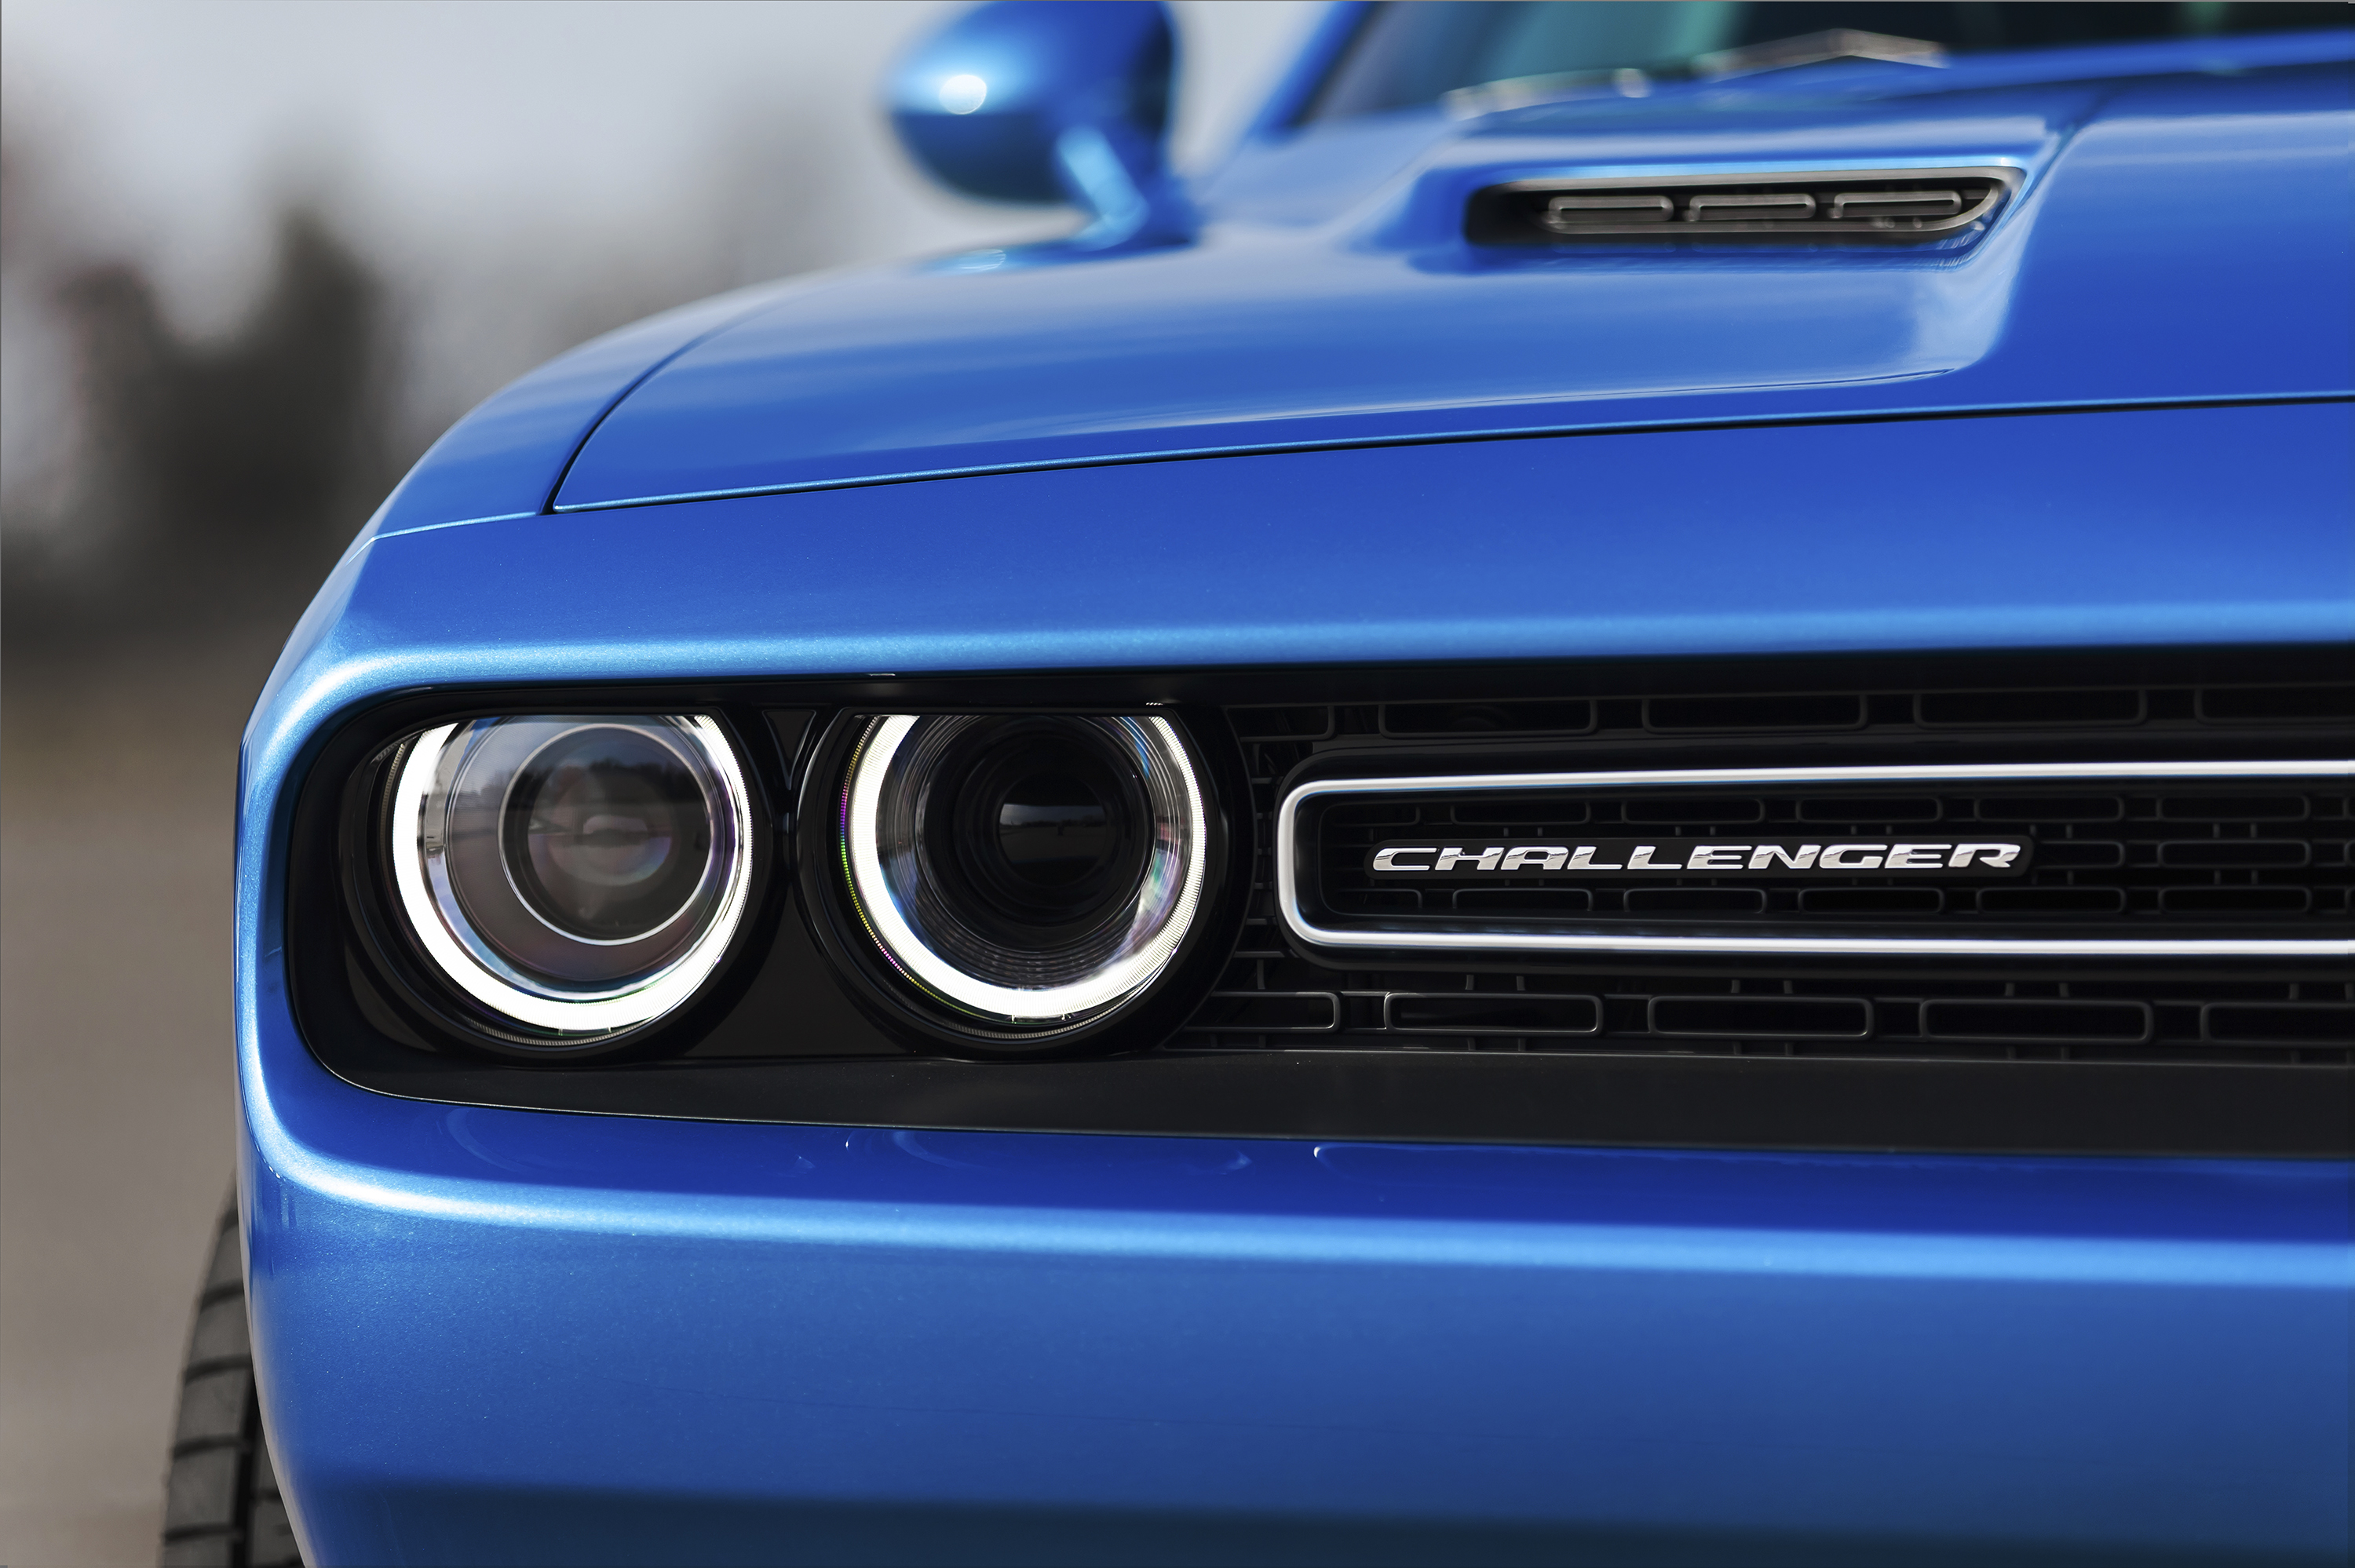 New Dodge Challenger >> 2015 Dodge Challenger makes debut in New York Paul Tan ...